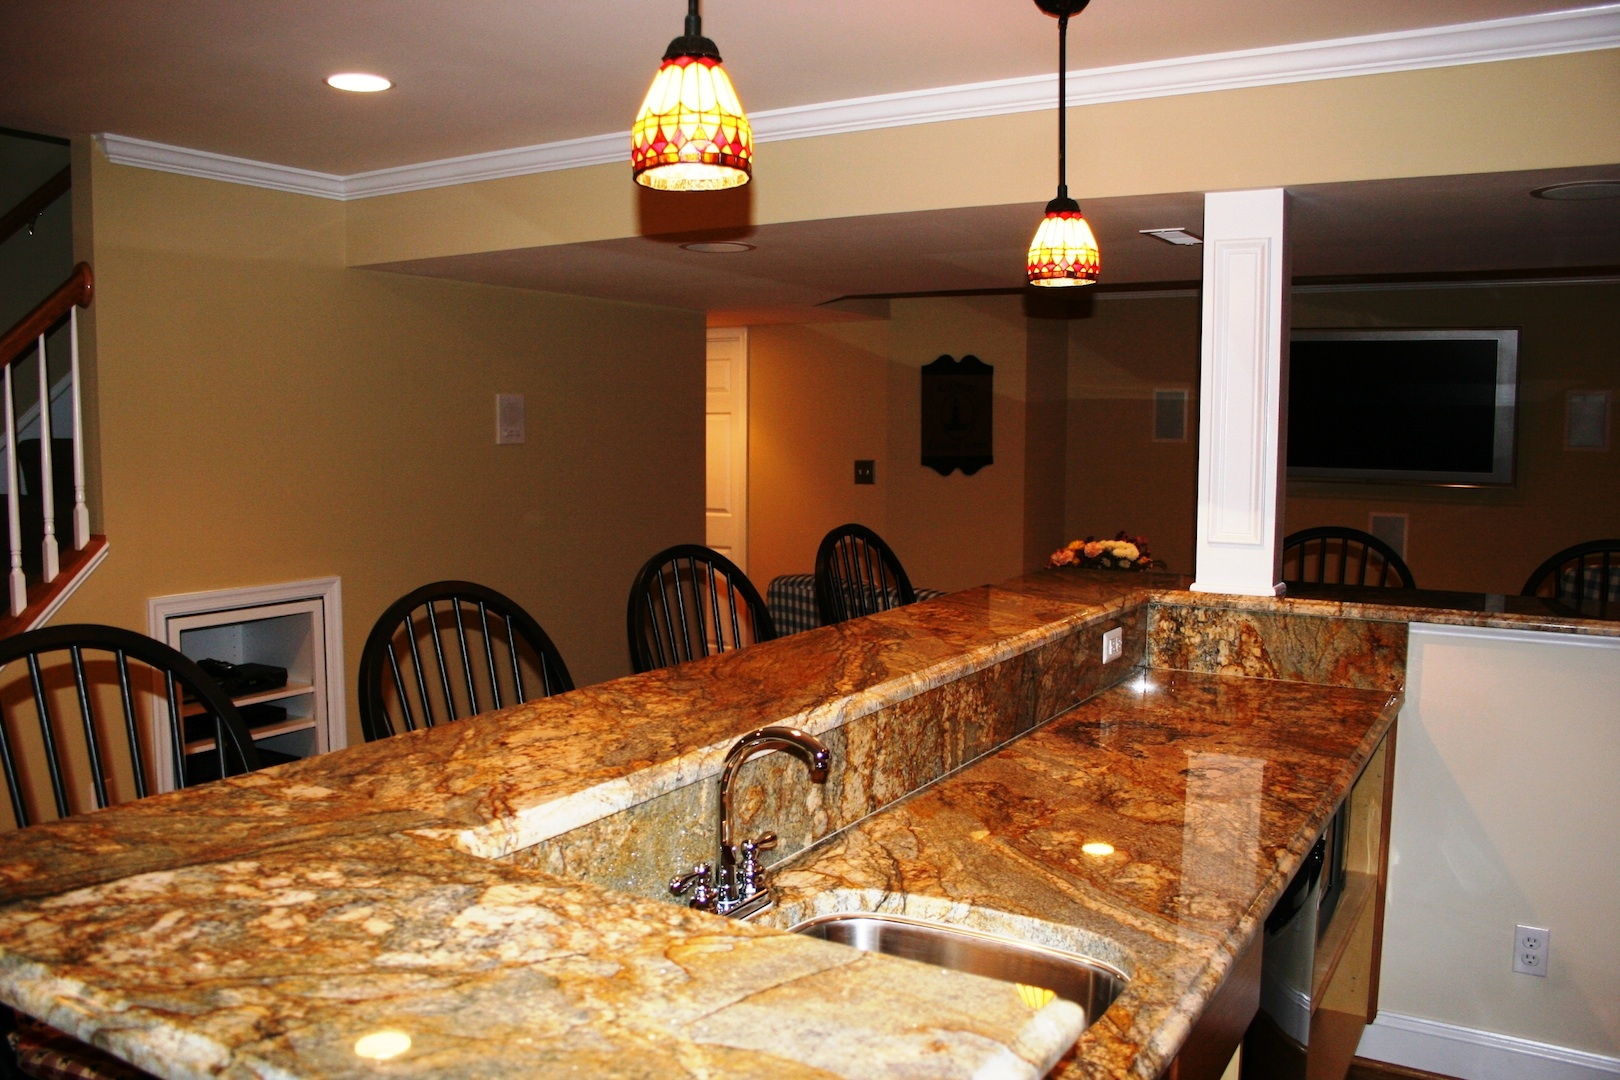 Basement Remodeling Pictures basement remodeling in baltimore | washington dc home renovations